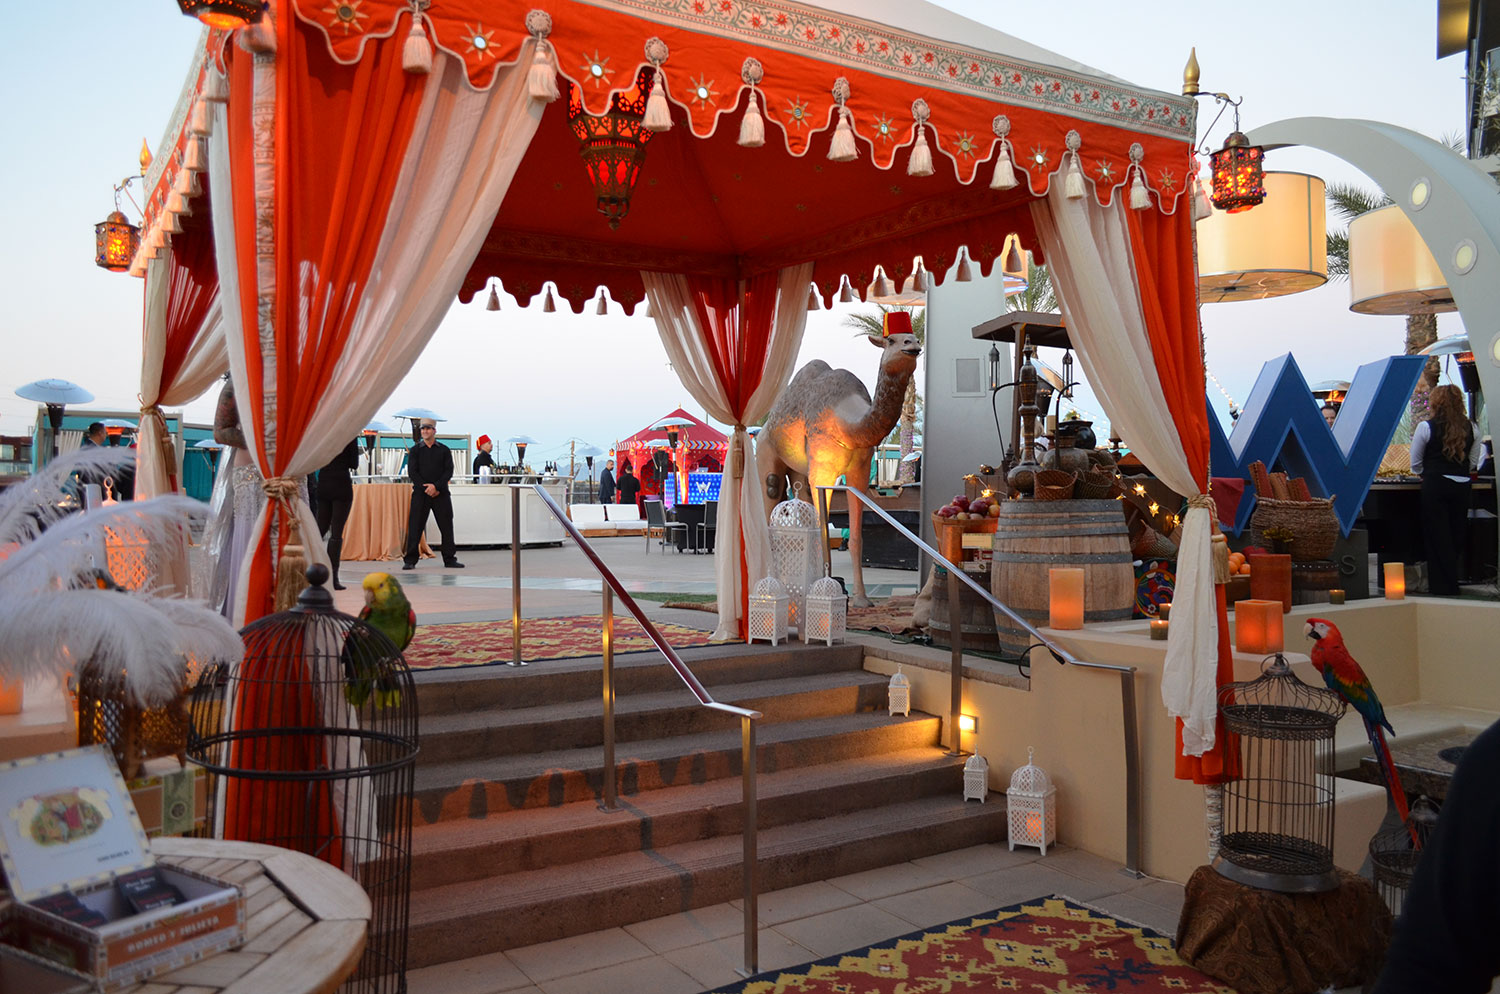 raj-tents-old-hollywood-theme-hotel-party.jpg